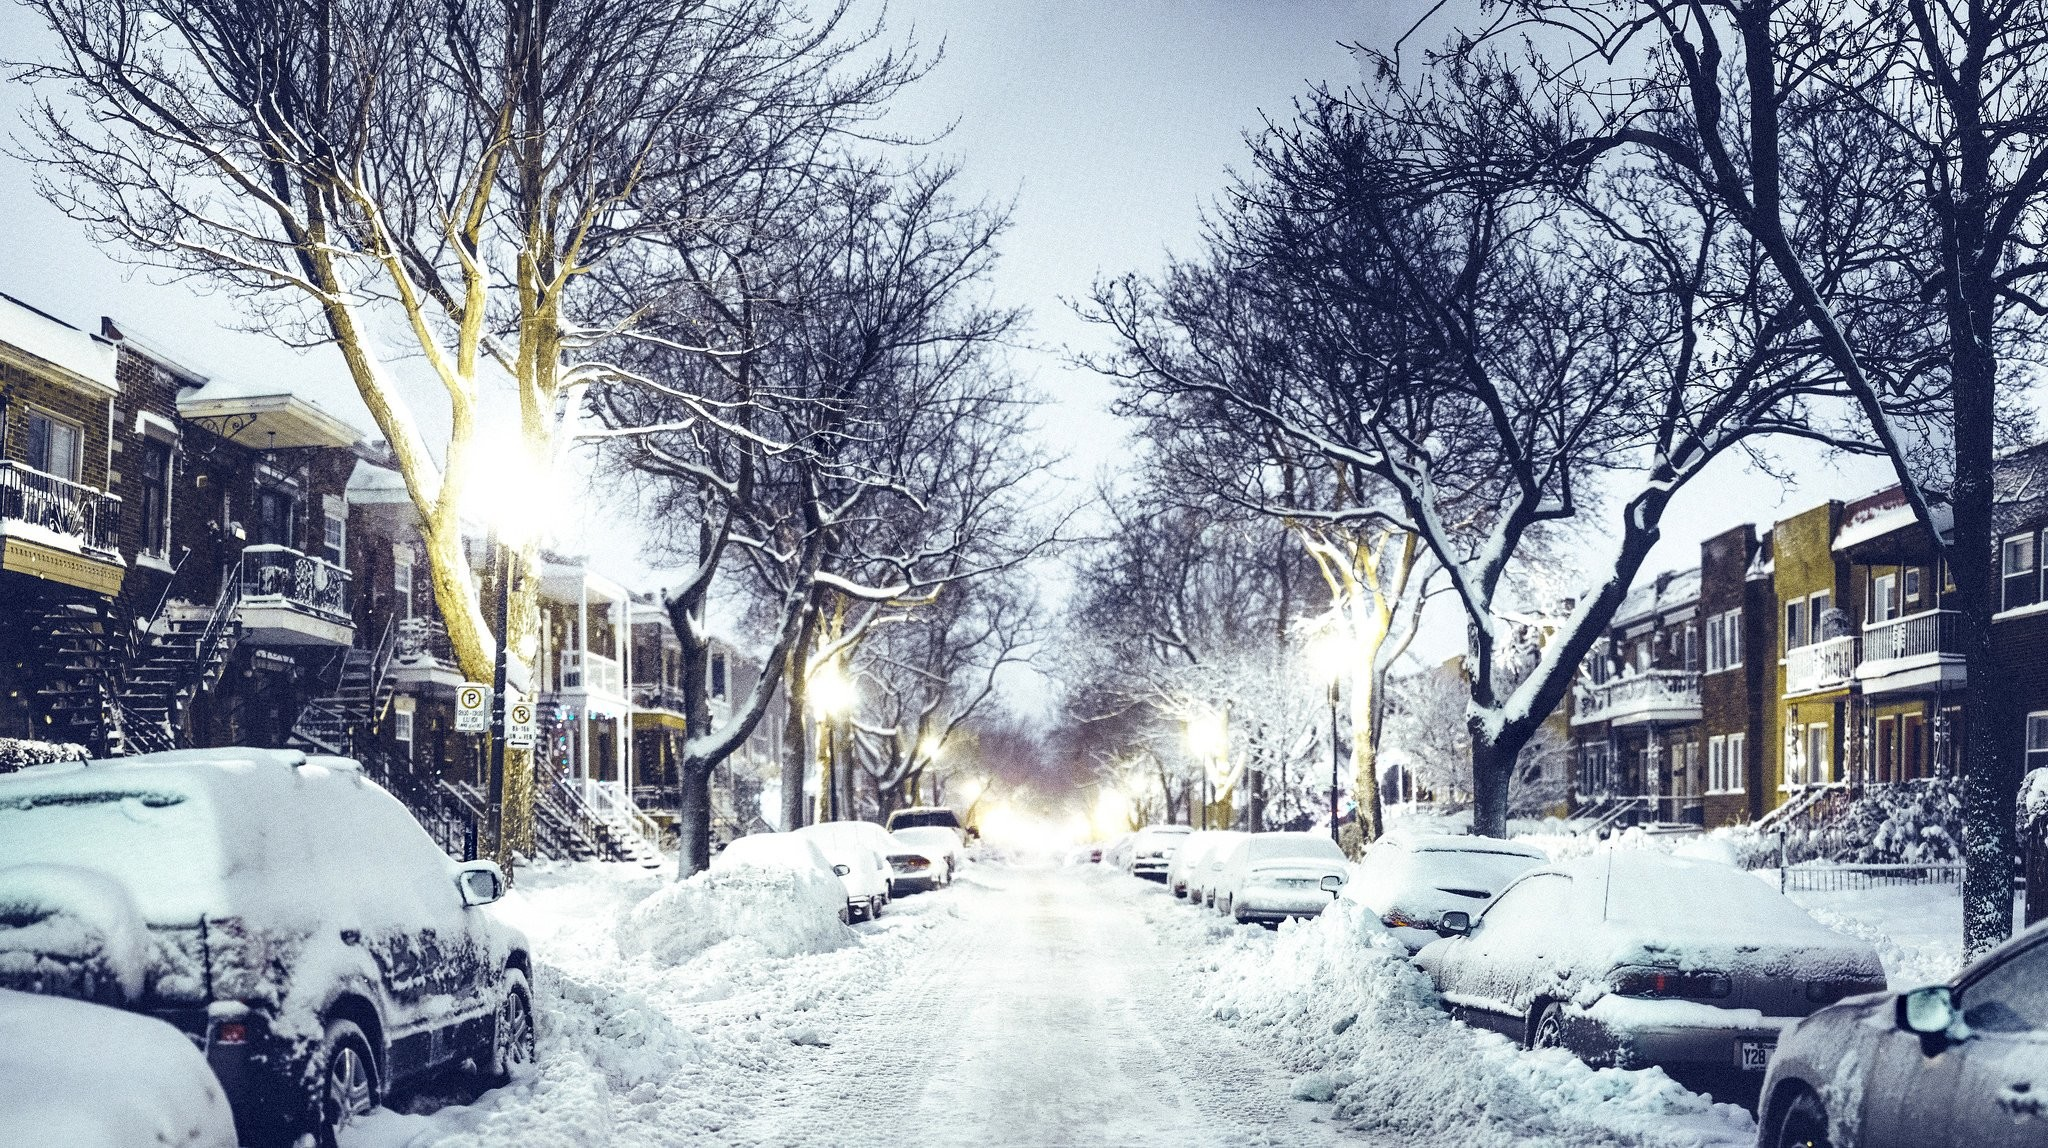 Street night road cars houses lights snow winter city wallpaper |  | 599307 | WallpaperUP